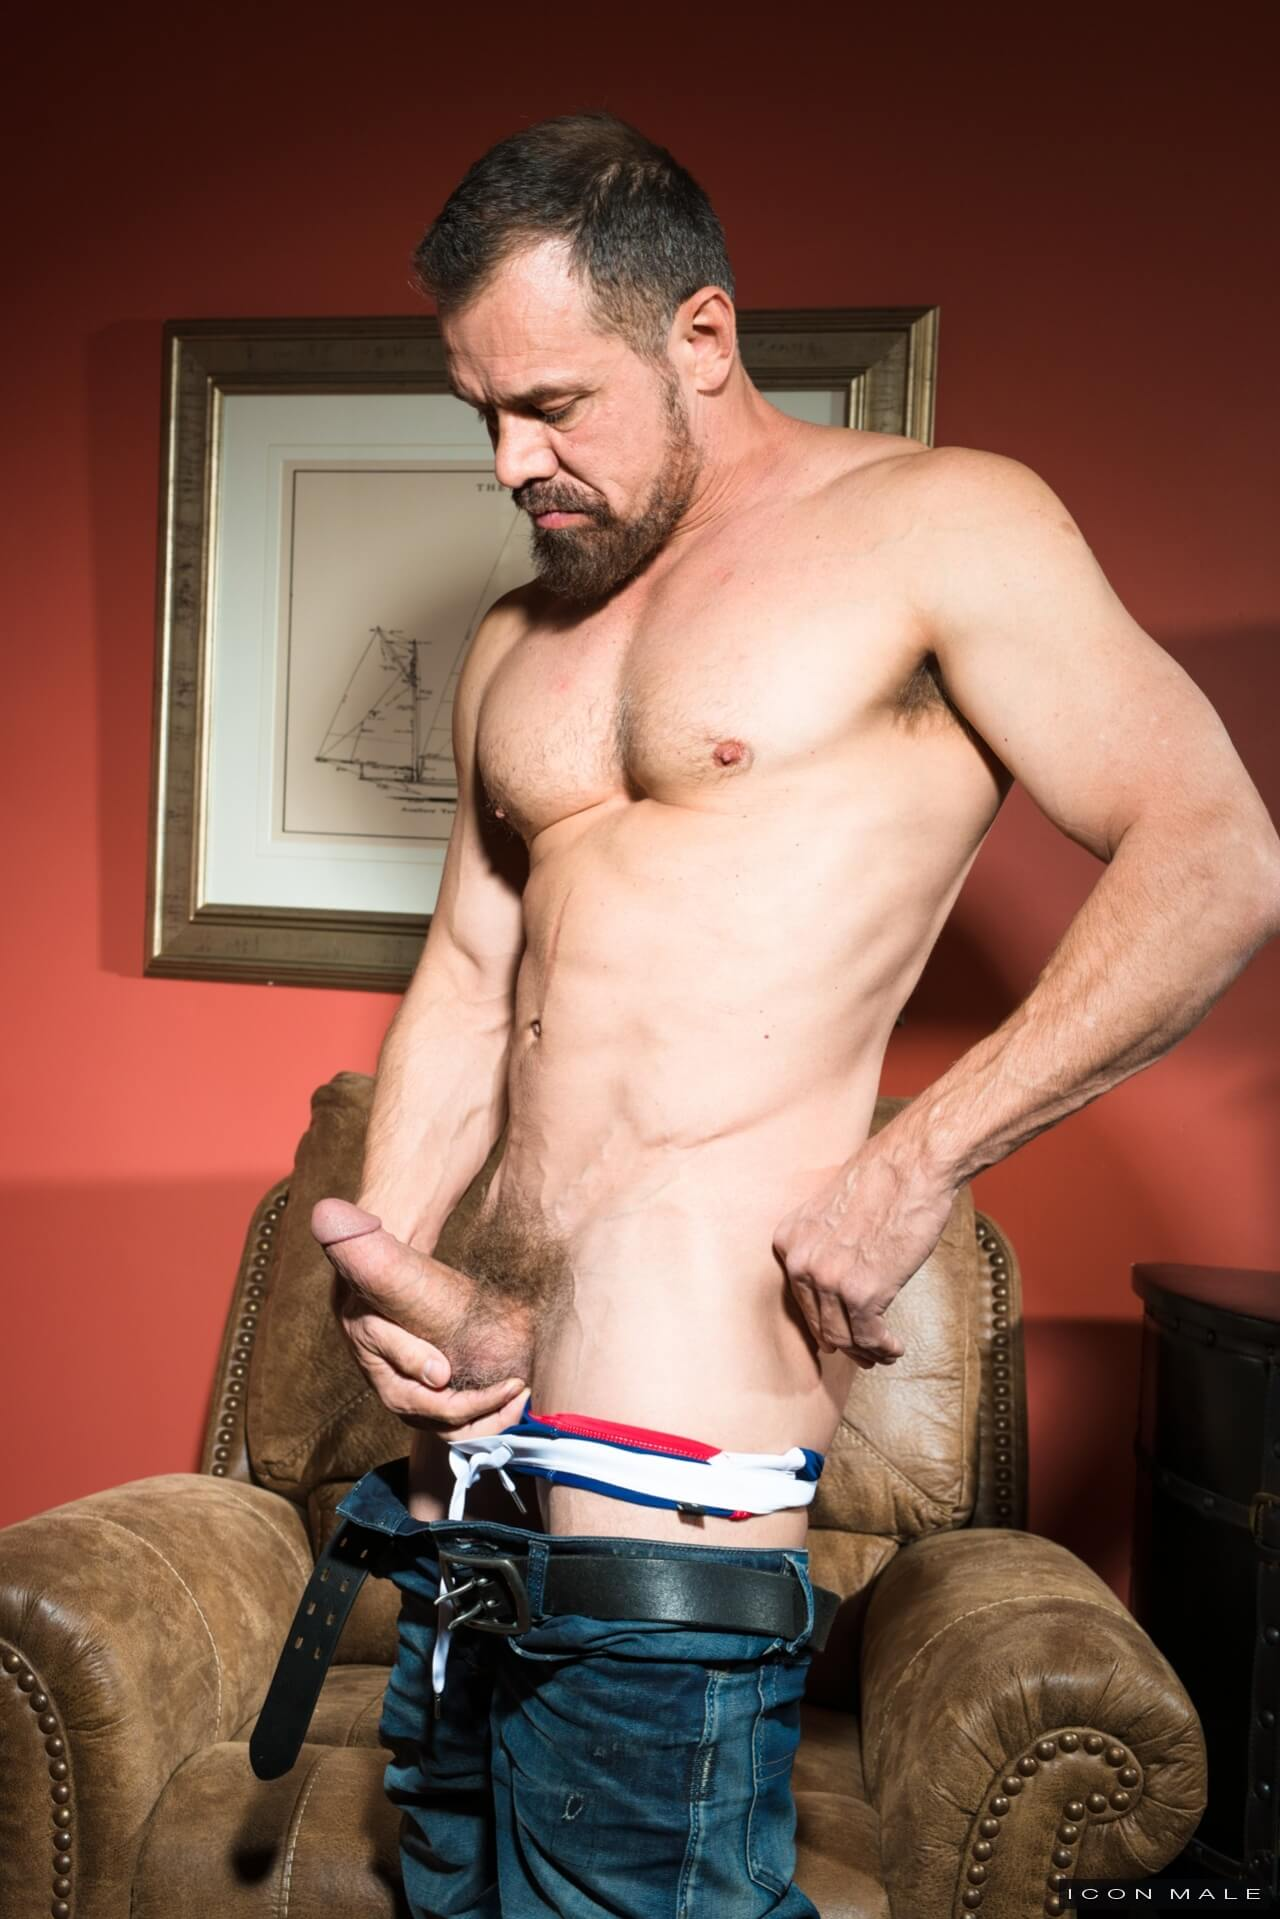 icon male hot daddies scene 3 rodney steele max sargent gay porn blog image 41